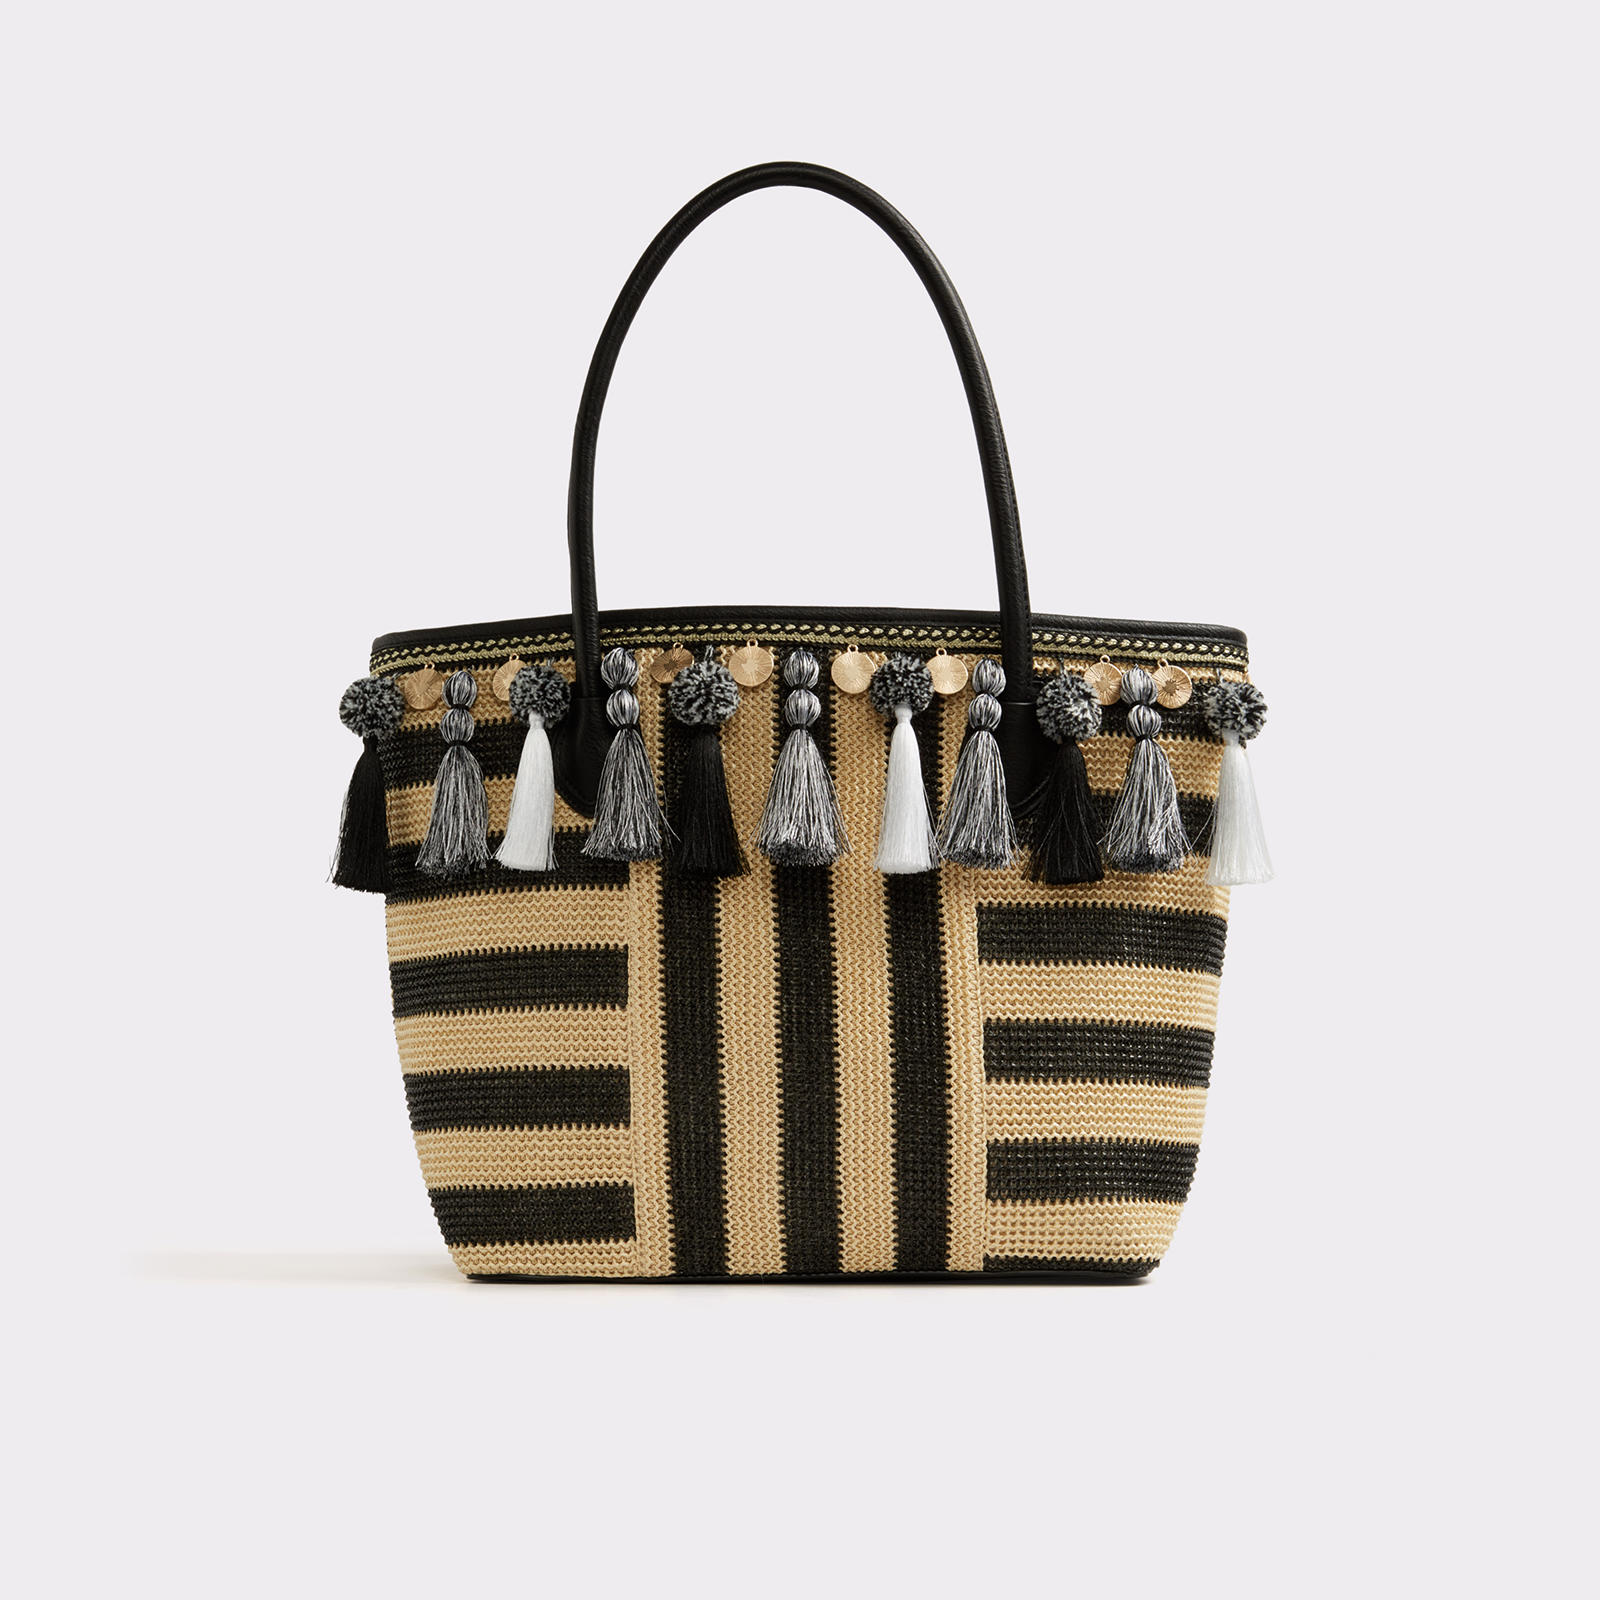 Straw tote bag with stripes and pom-pom details